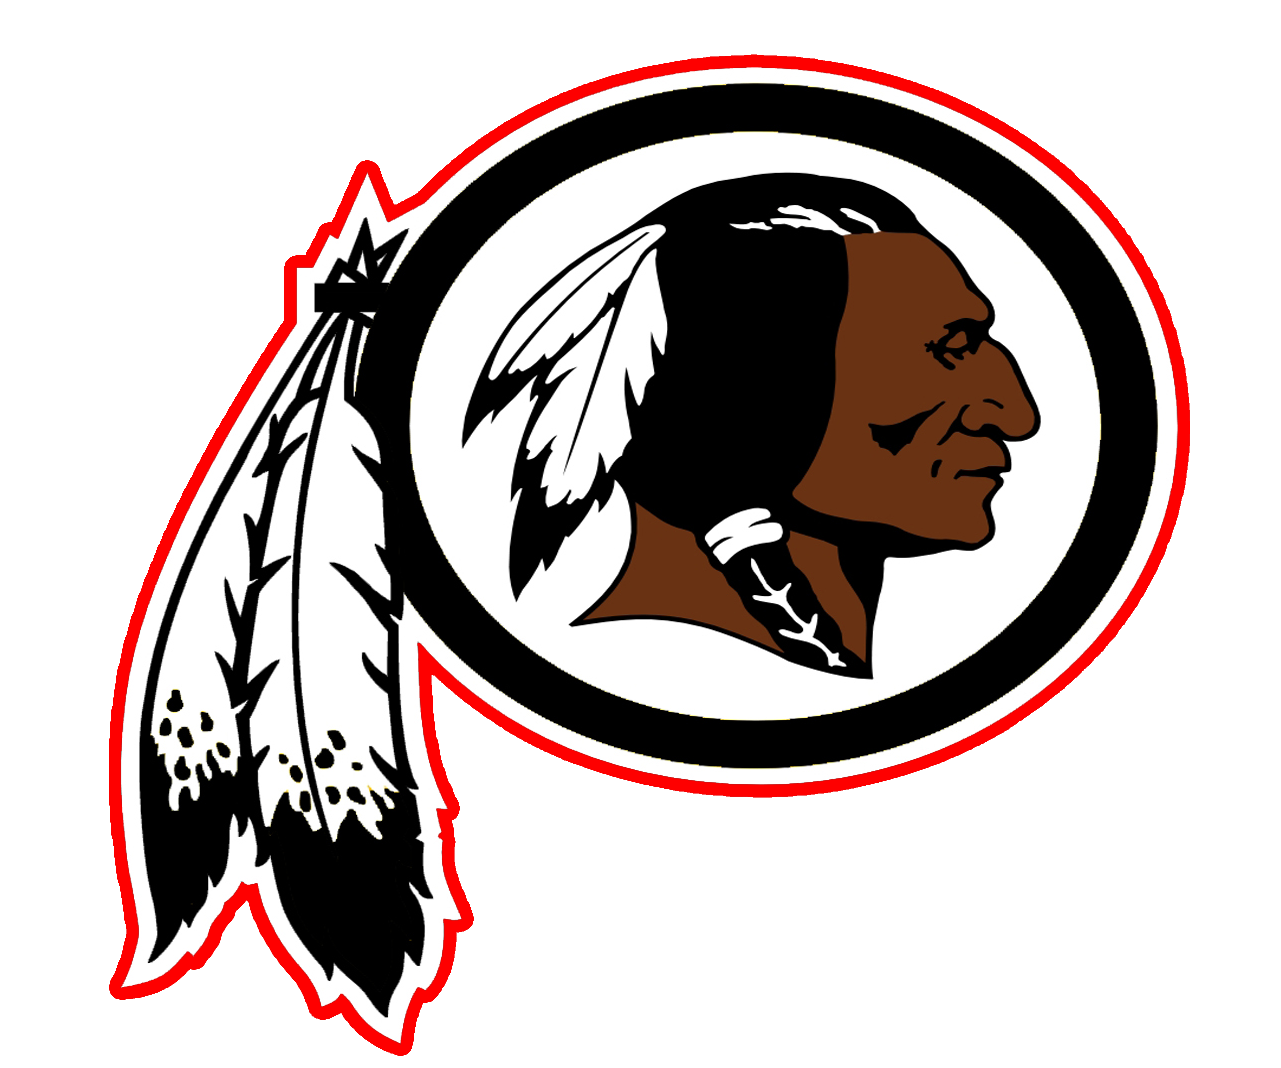 Union redskin clipart clip library download The Stilwell Indians vs. the Union Redskins - ScoreStream clip library download